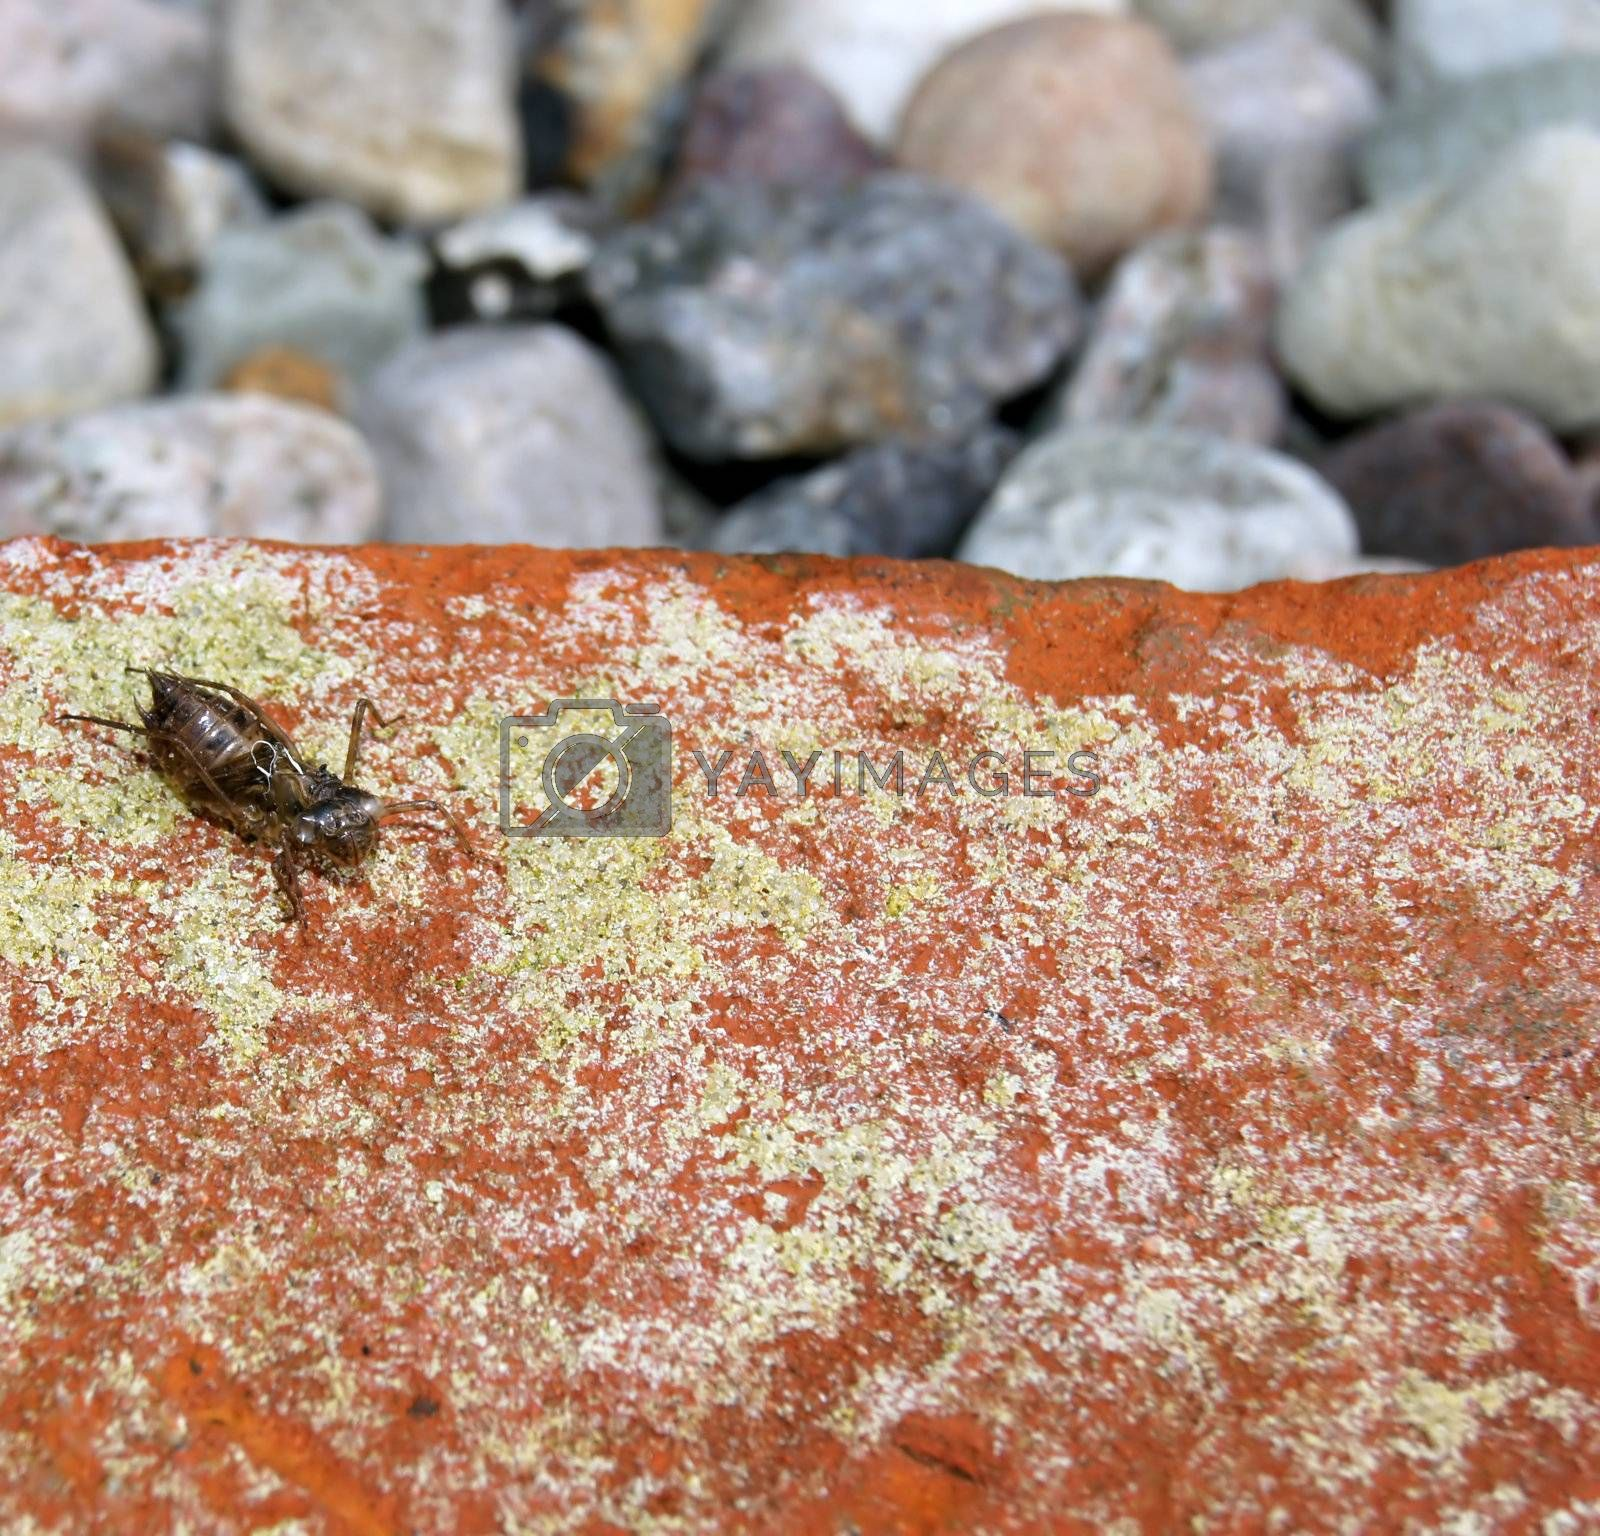 Stripped exoskeleton of an insect on a brick.